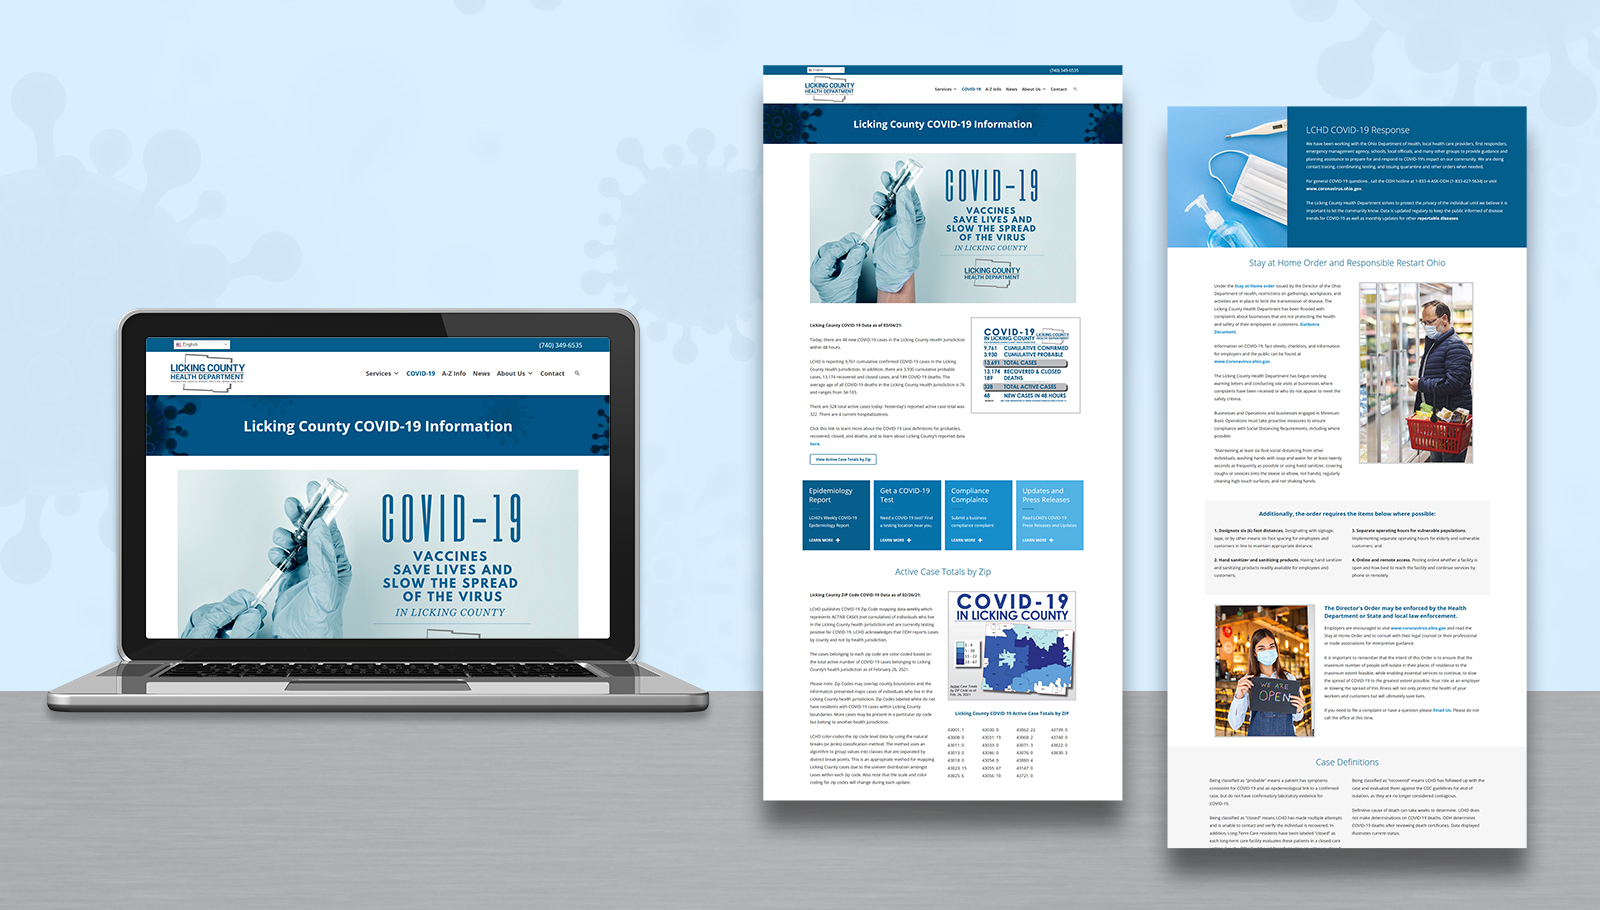 covid-19 landing page design for Licking County Health Department